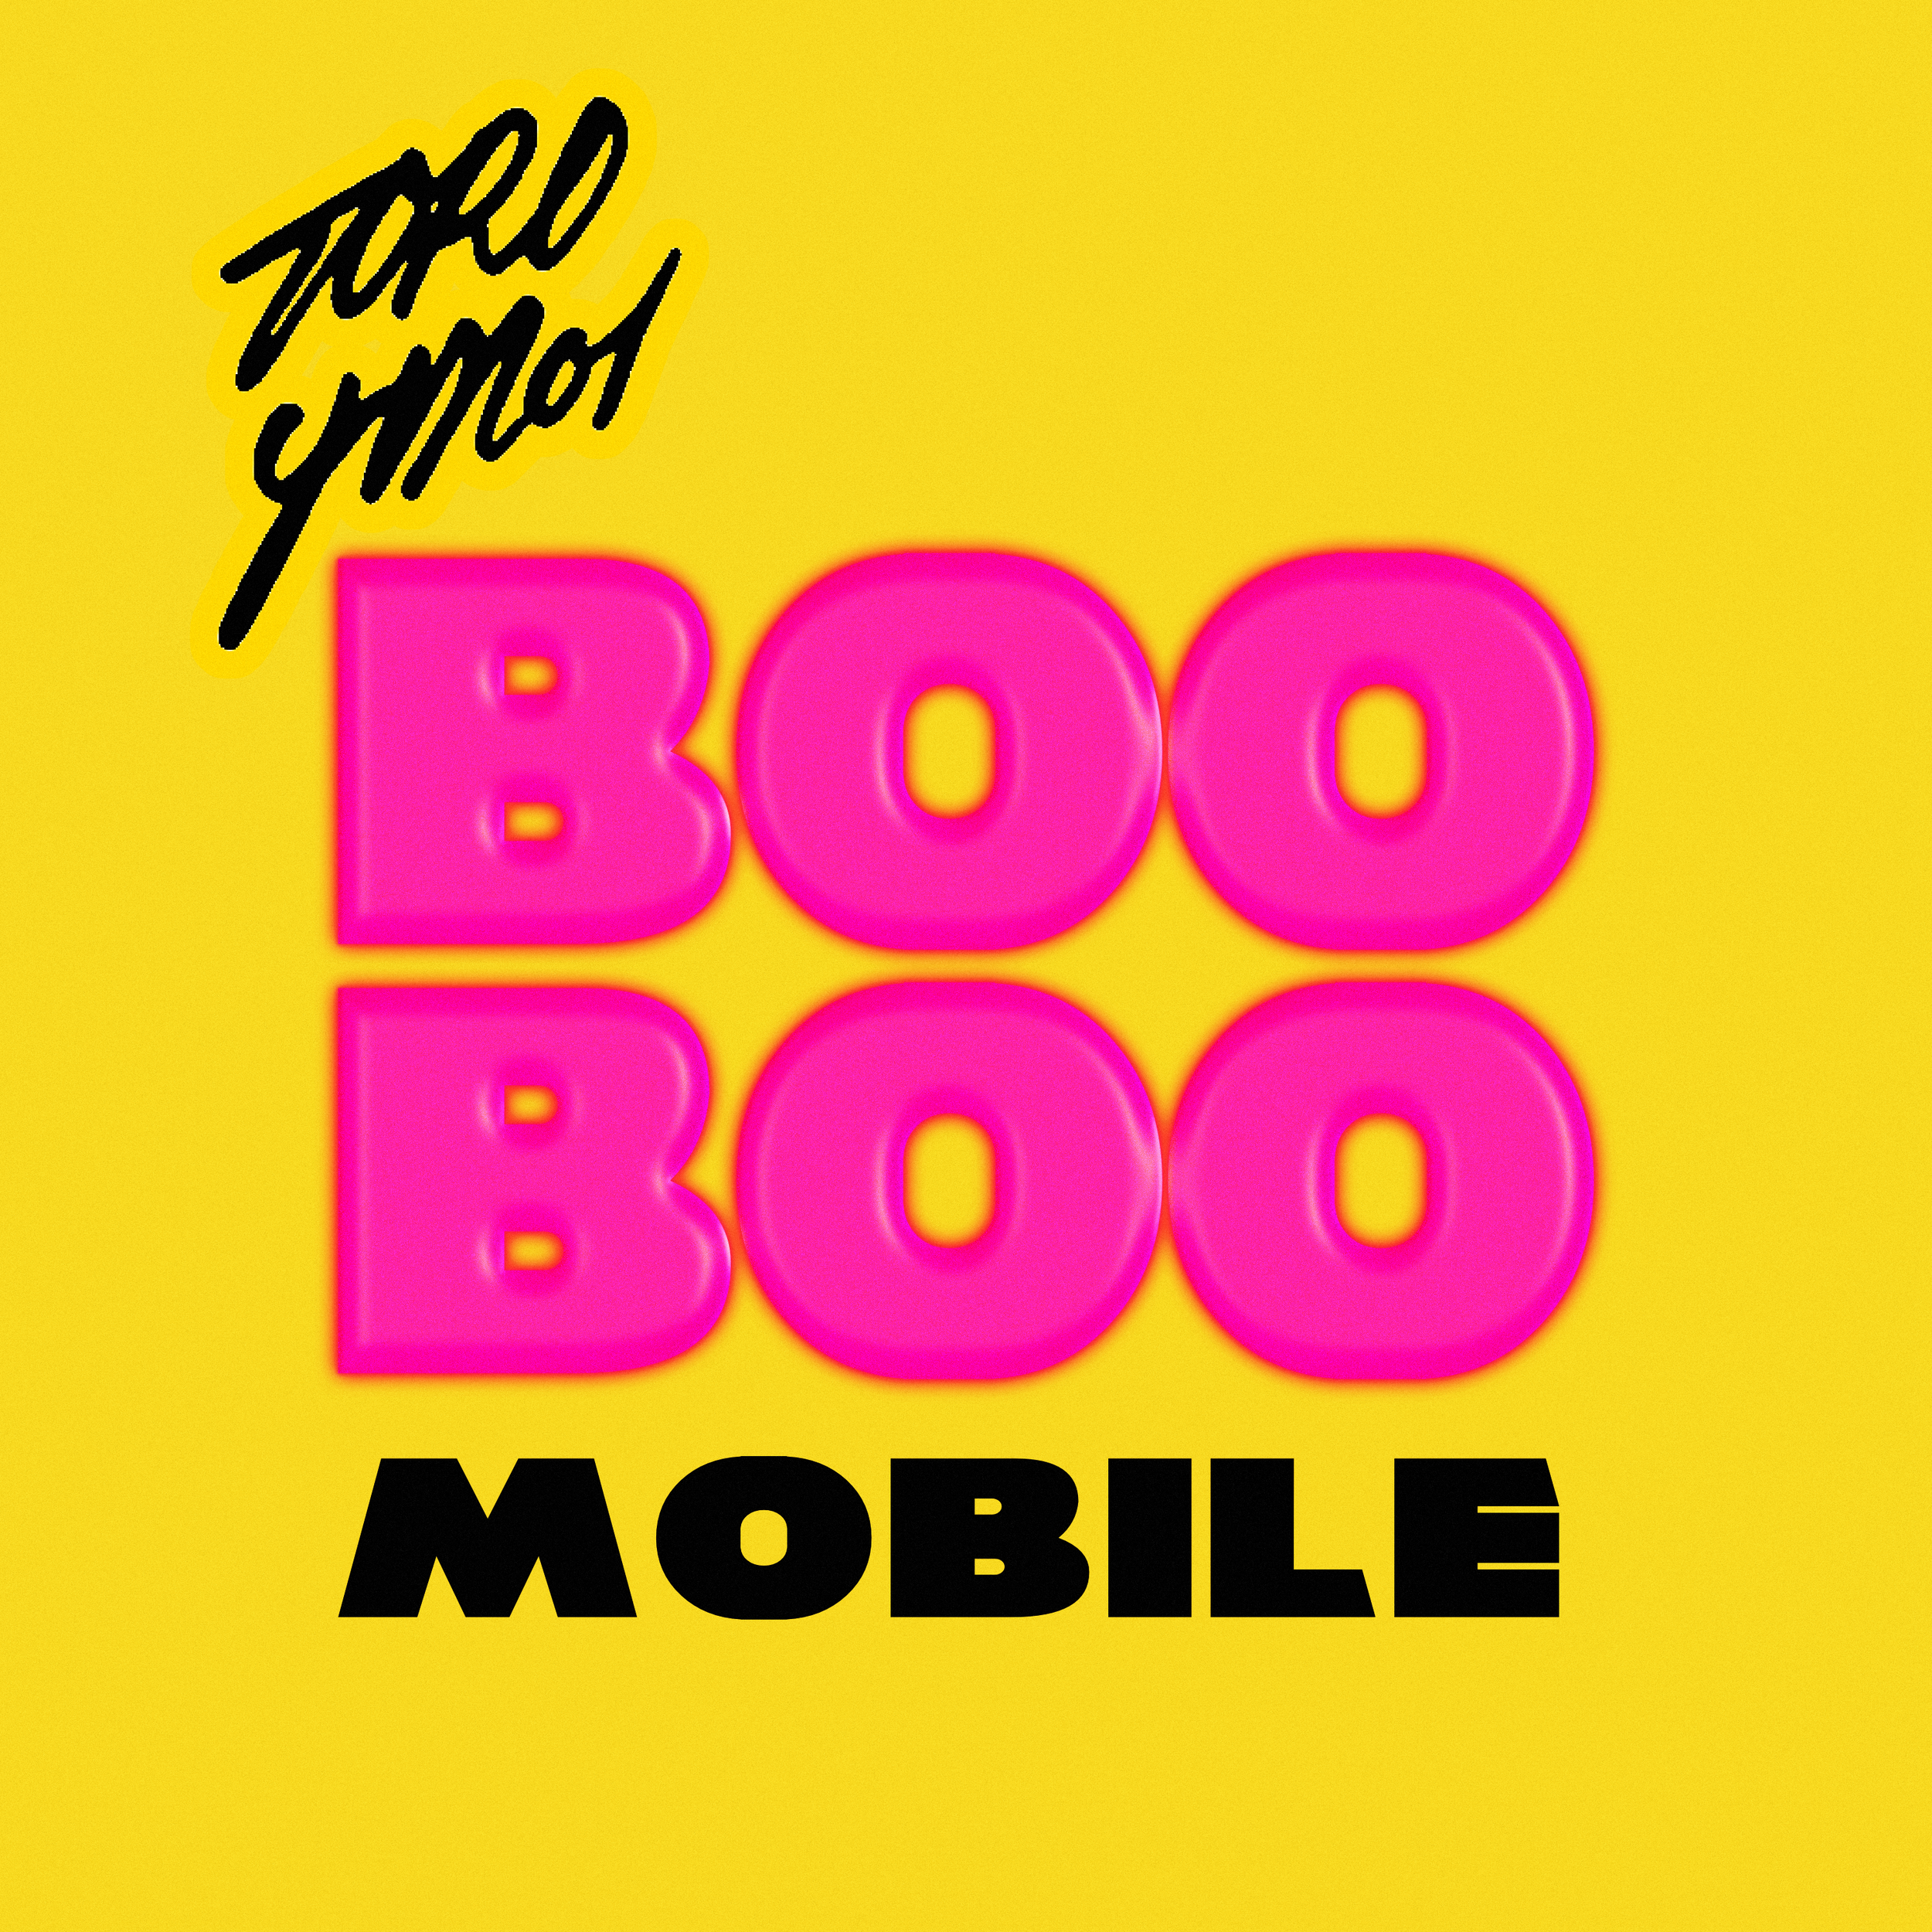 BOOBOO MOBILE_ProzTAYLOR.png